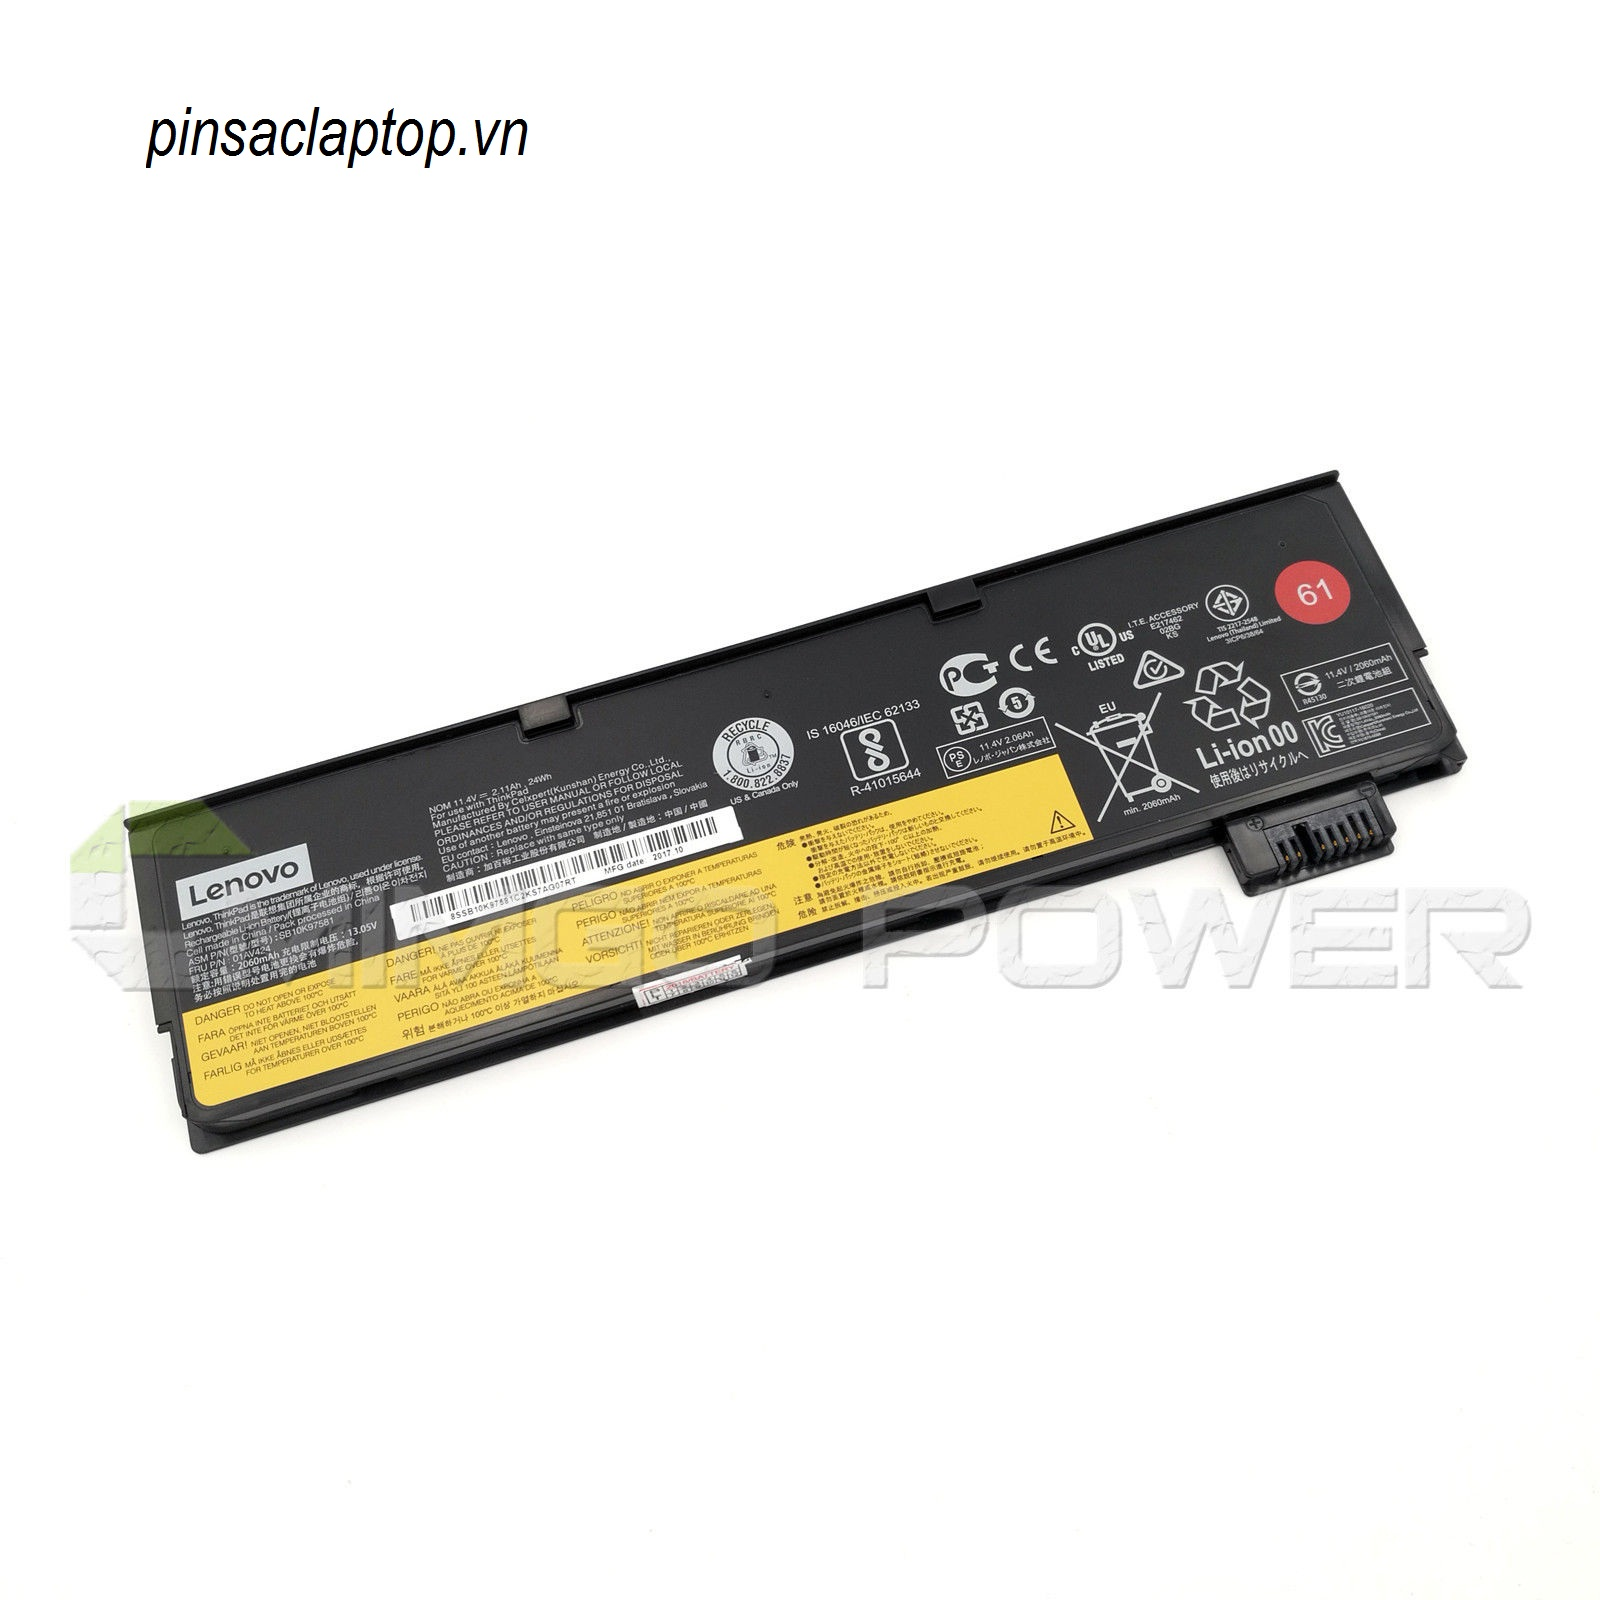 Pin IBM Lenovo Thinkpad- Battery ThinkPad T460, T460p, T470p 3 Cell